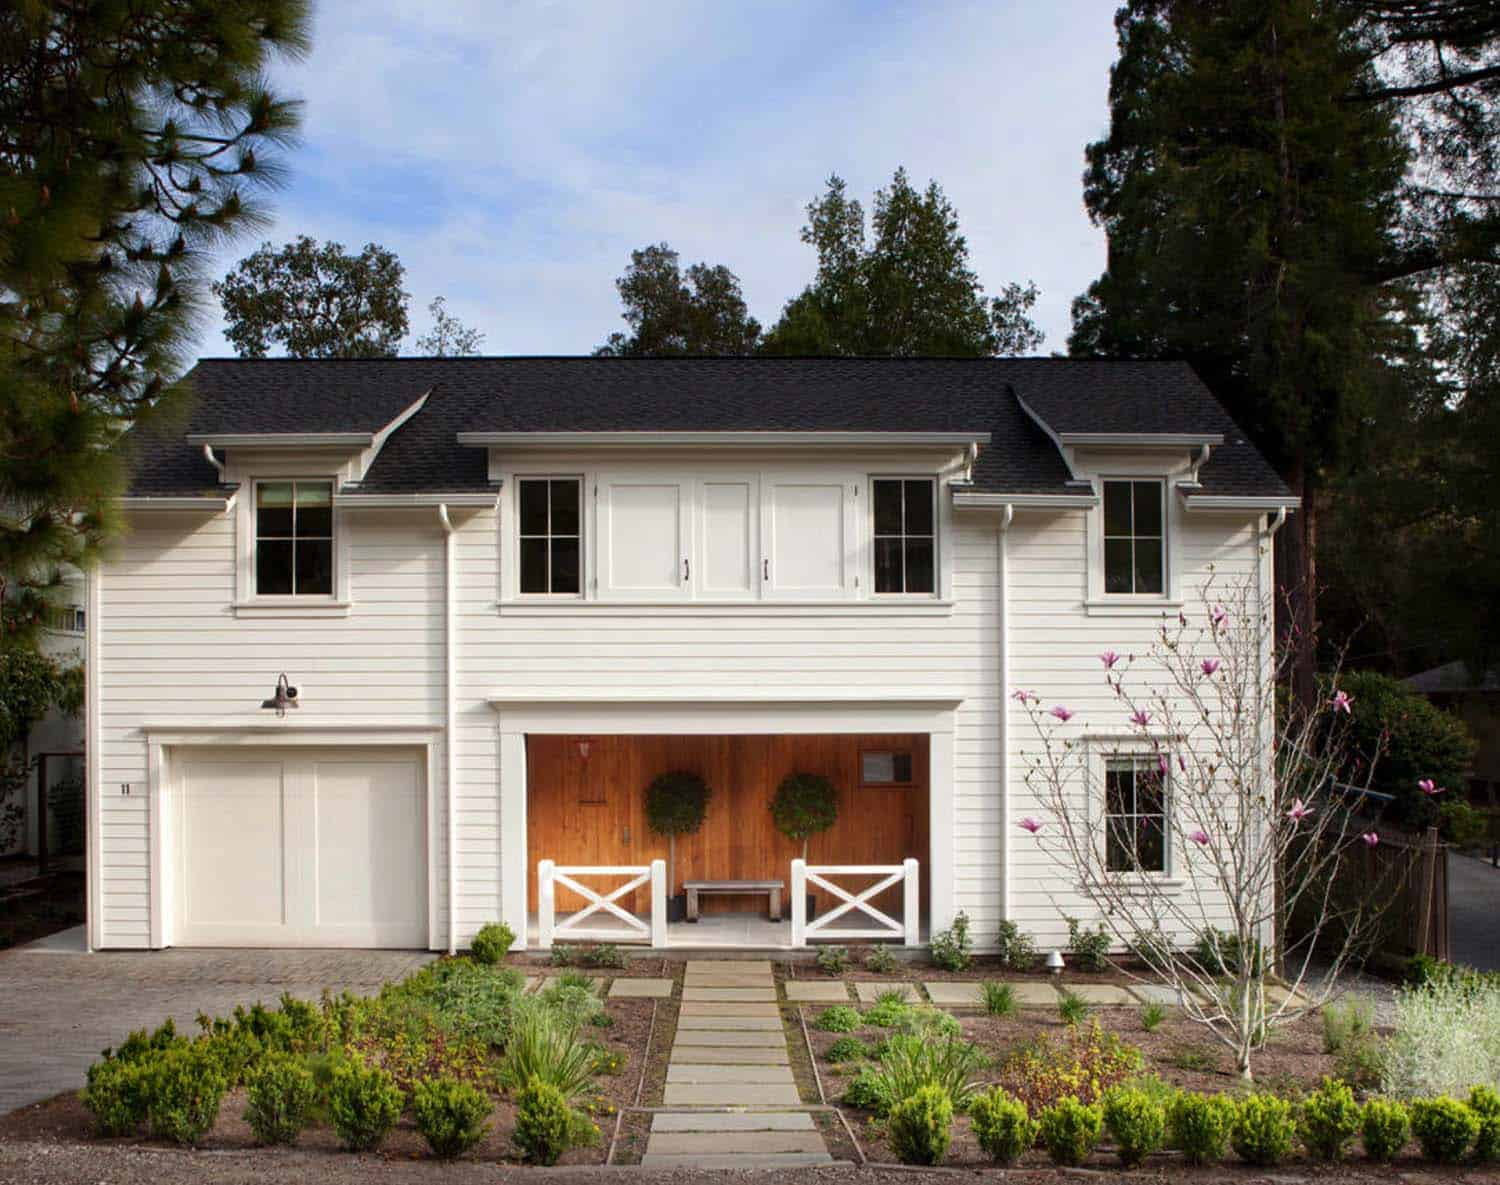 Chic modern farmhouse style in mill valley california for Modern farmhouse architecture plans